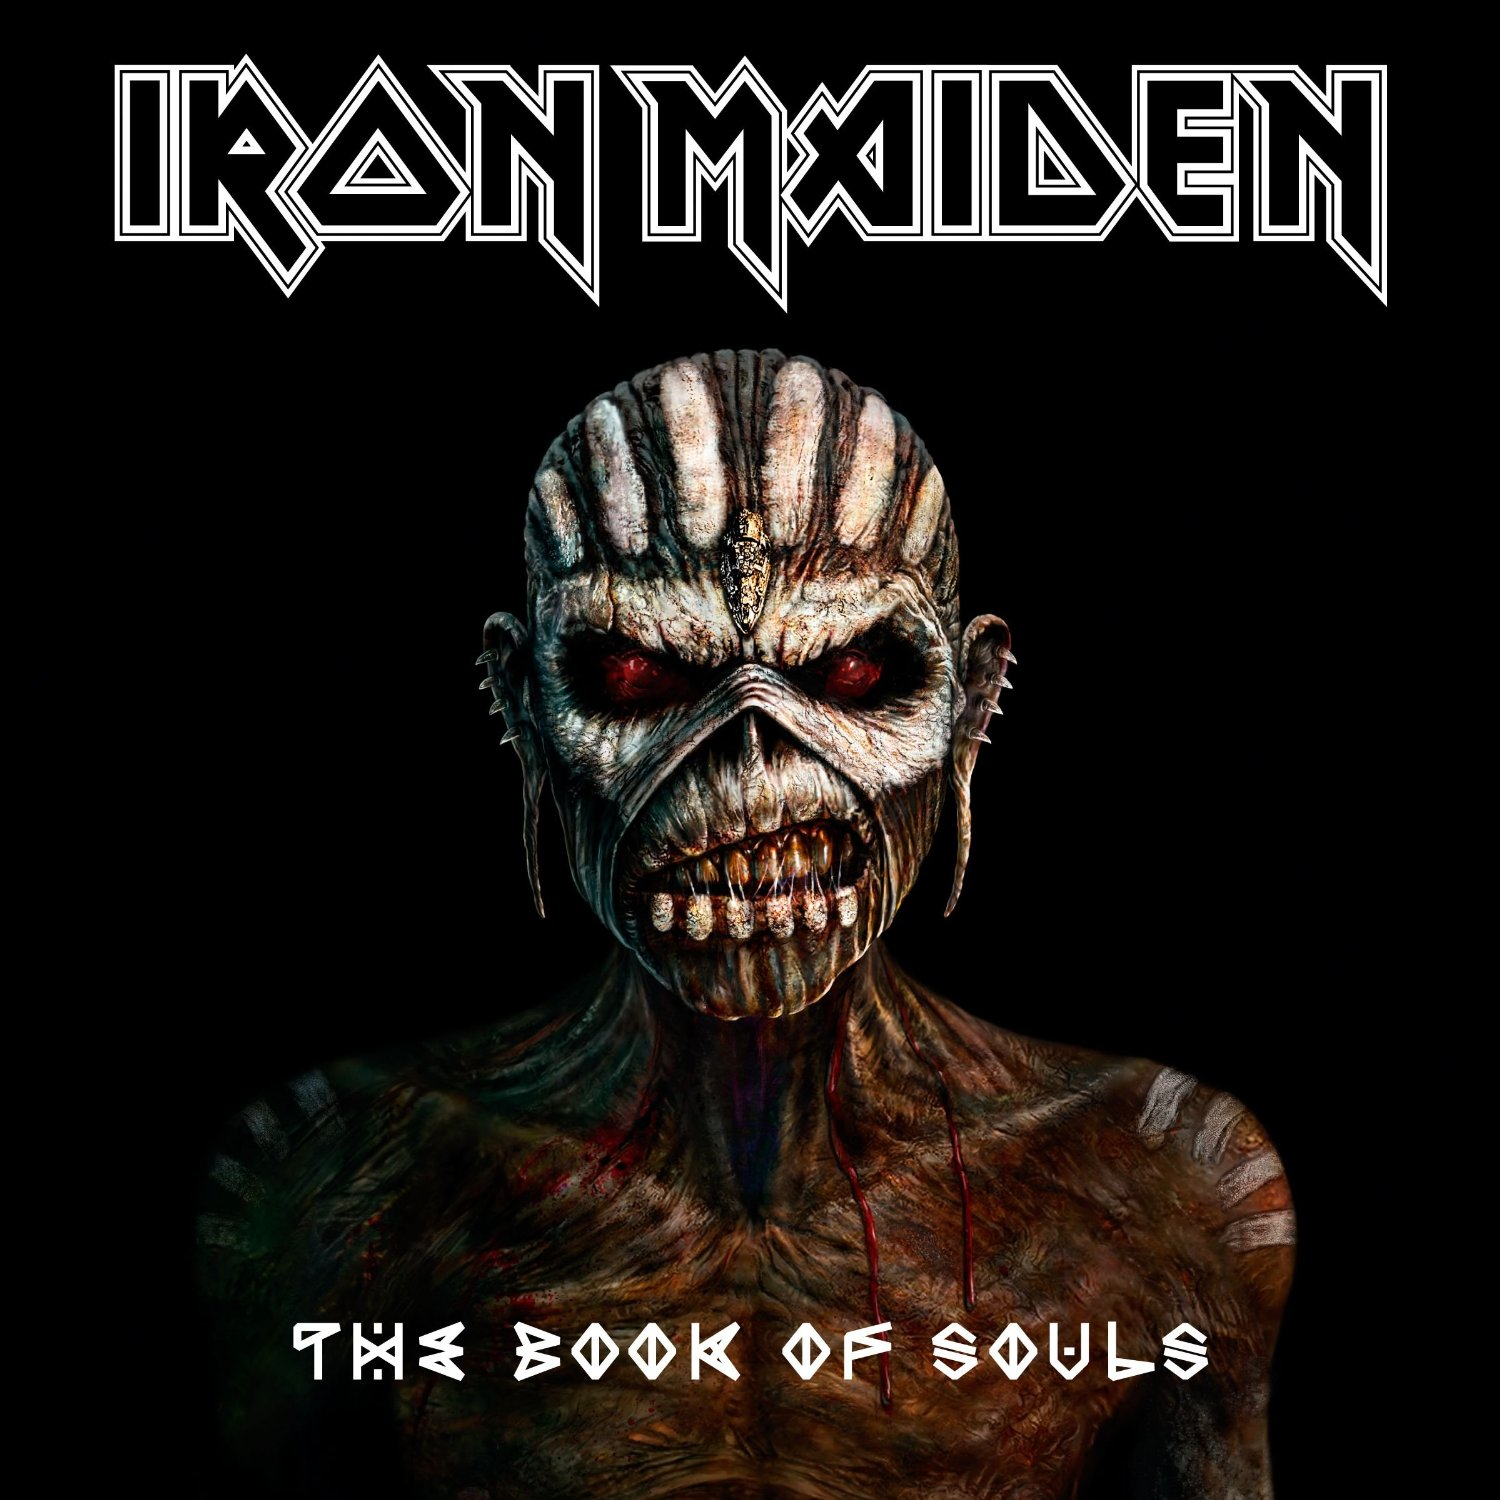 Iron Maiden-The book of souls